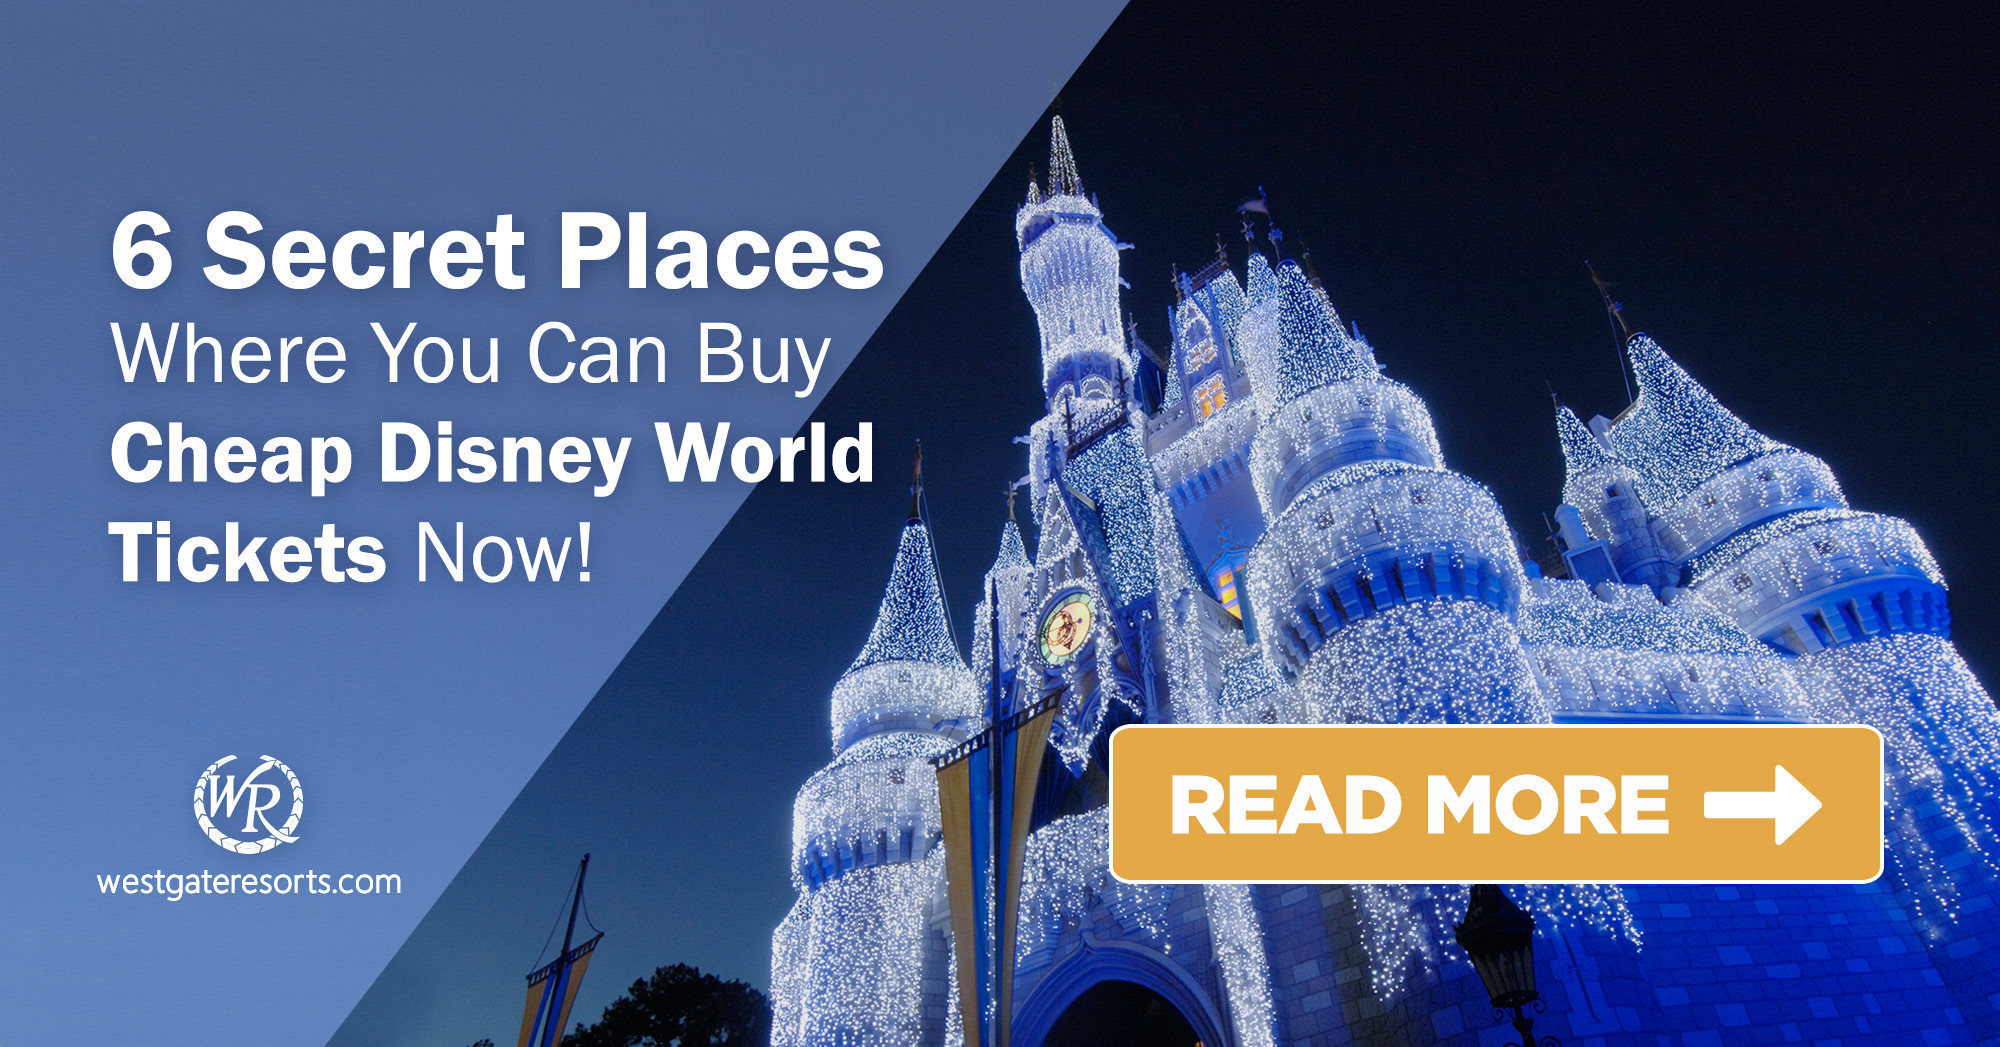 6 Secret Places Where You Can Buy Cheap Disney World Tickets Now!  | Cheap Disney Tickets